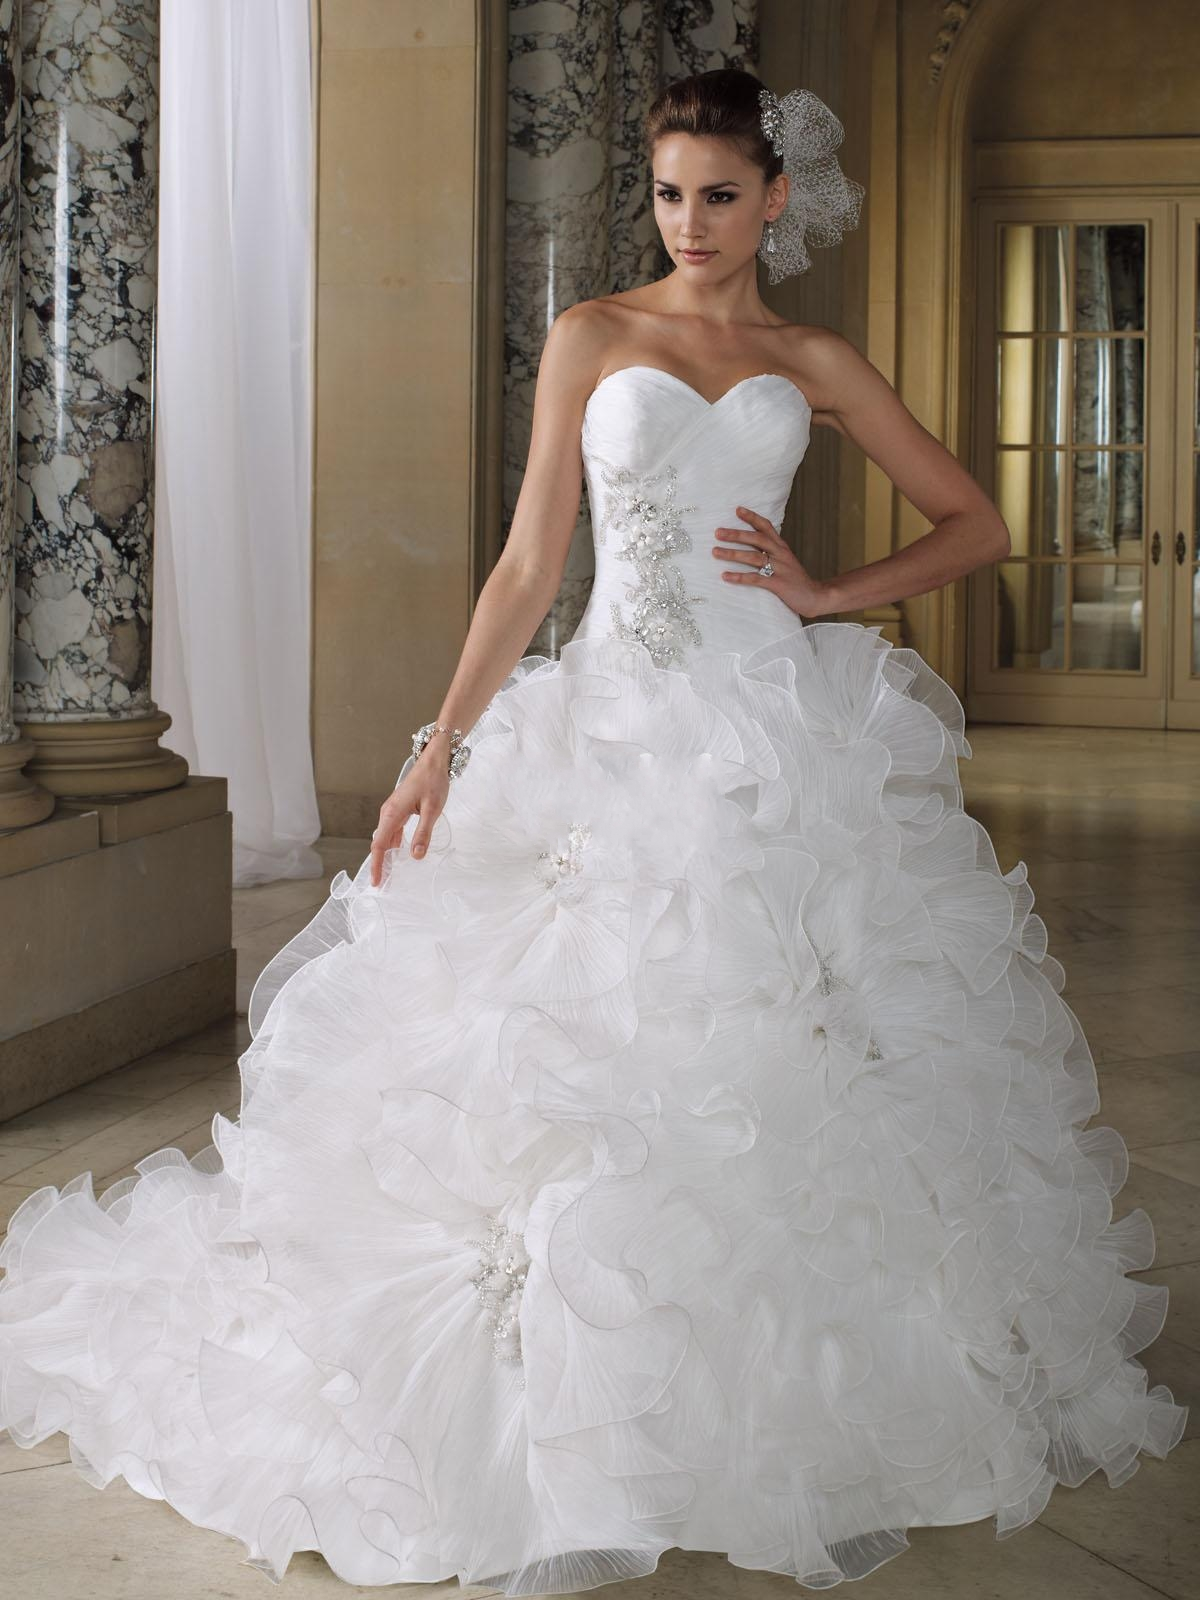 Fashion apparel 2012 ball wedding dresses 2013 fishtail wedding dress mermaid mermaid style quite fit in the waist and hips then flairs delicate skirt below the knee at the base ombrellifo Image collections